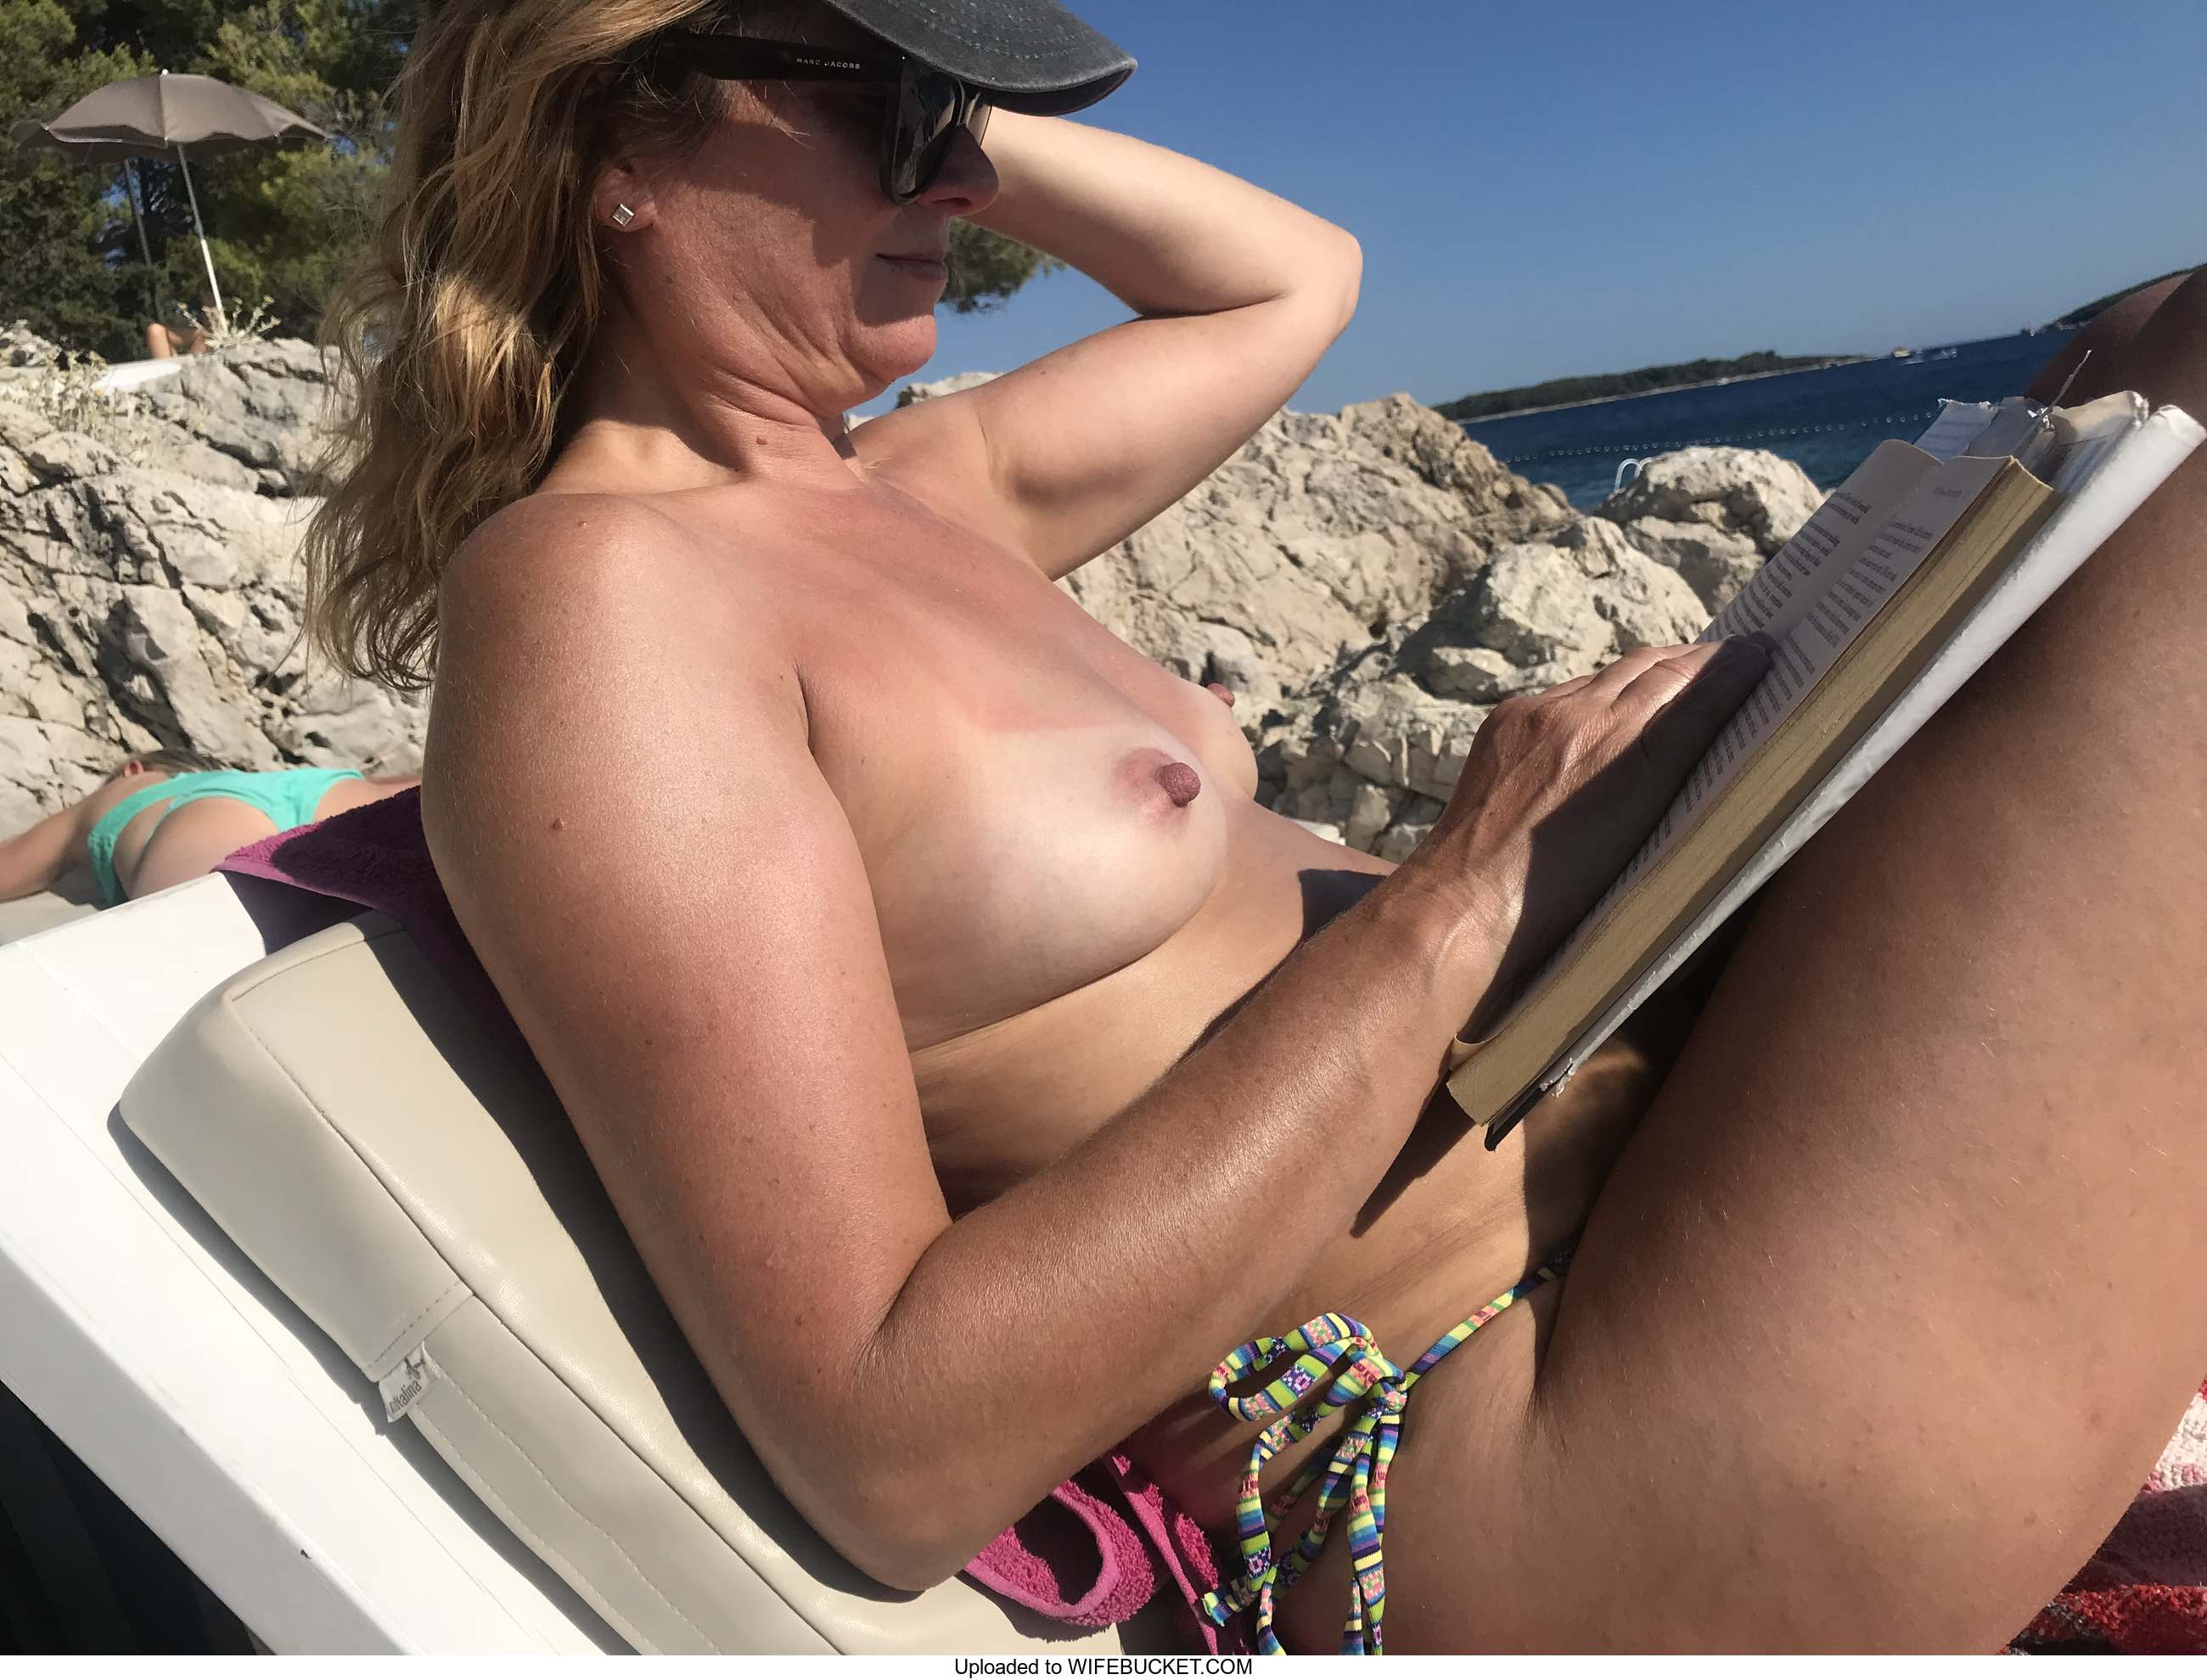 Wife exposed nude